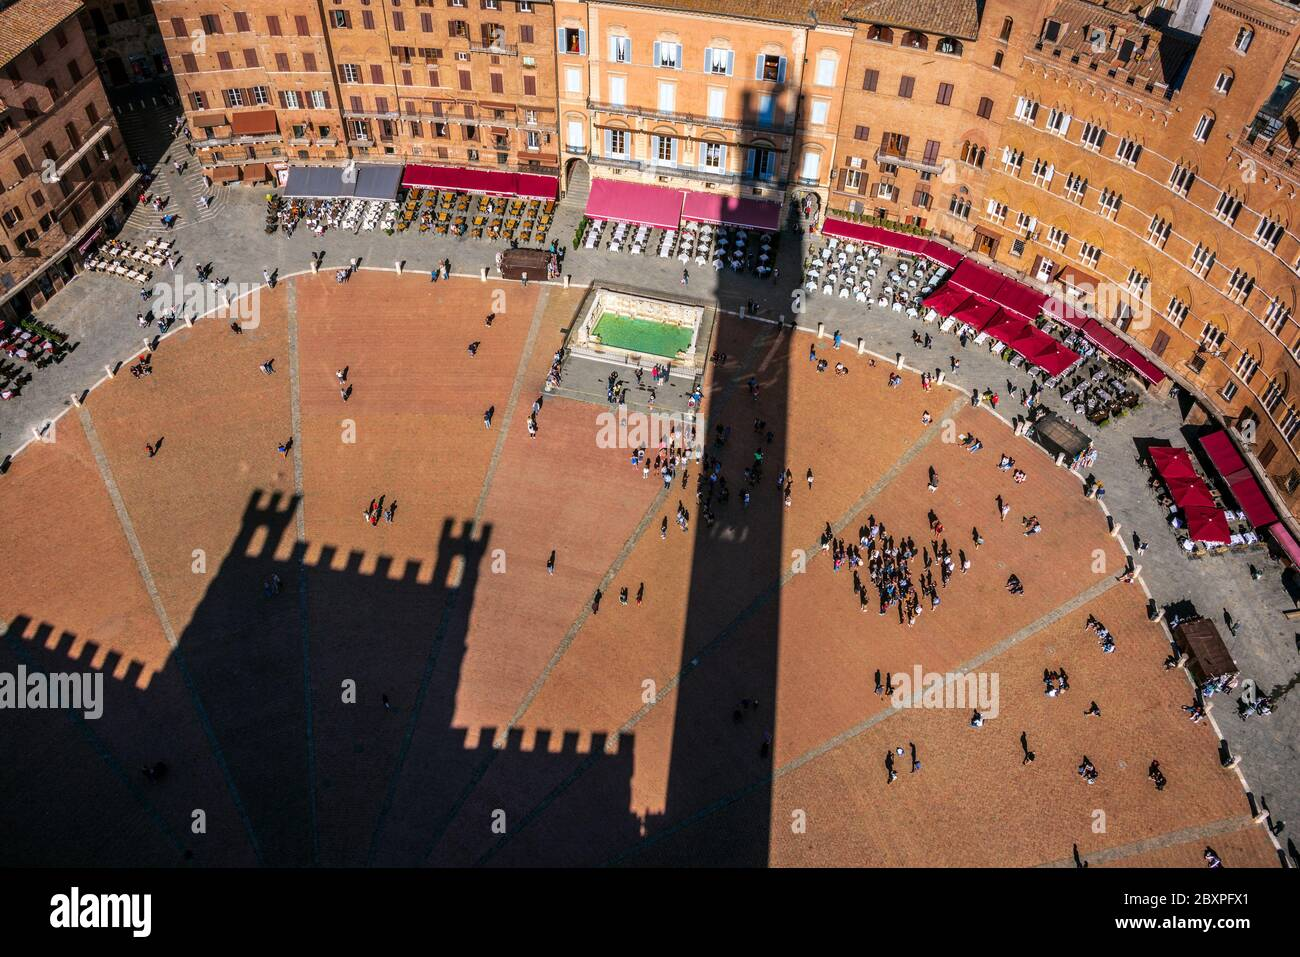 the town hall palace of Siena shot from high to bottom projected its shadows on the famous historical Campo city square Stock Photo